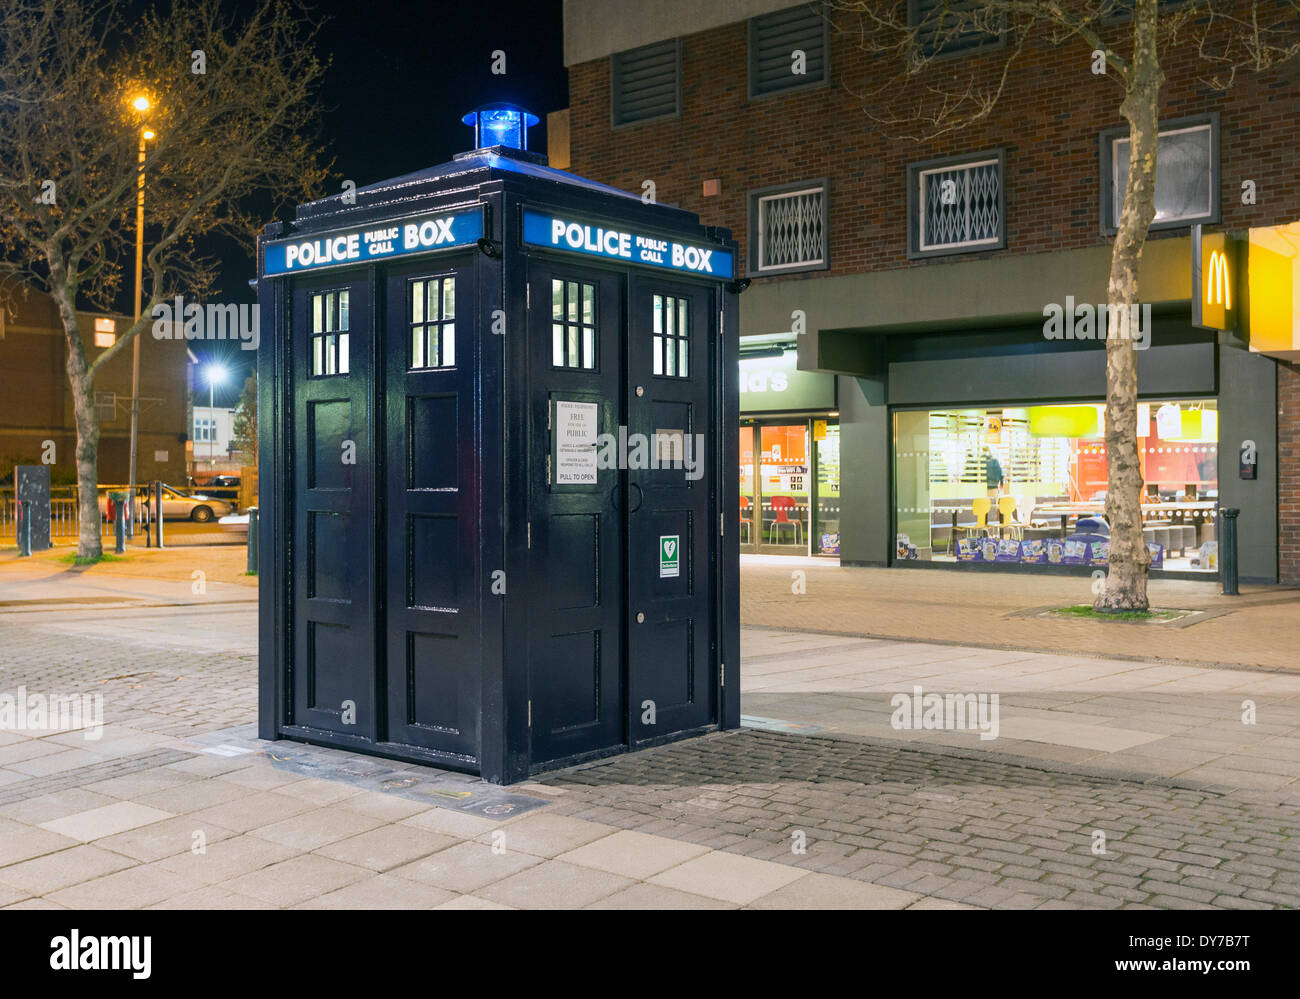 Boscombe, UK. 08th Apr, 2014. Night shot of the new police box which resembles the 'Tardis' from Dr Who which was unveiled today TUESDAY 8TH APRIL on Boscombe precinct by Bournemouth East MP Tobias Ellwood. It intended to help combat antisocial behaviour by providing a regular police presence in the antisocial behaviour hotspot. Credit:  Gregory  Davies/Alamy Live News - Stock Image